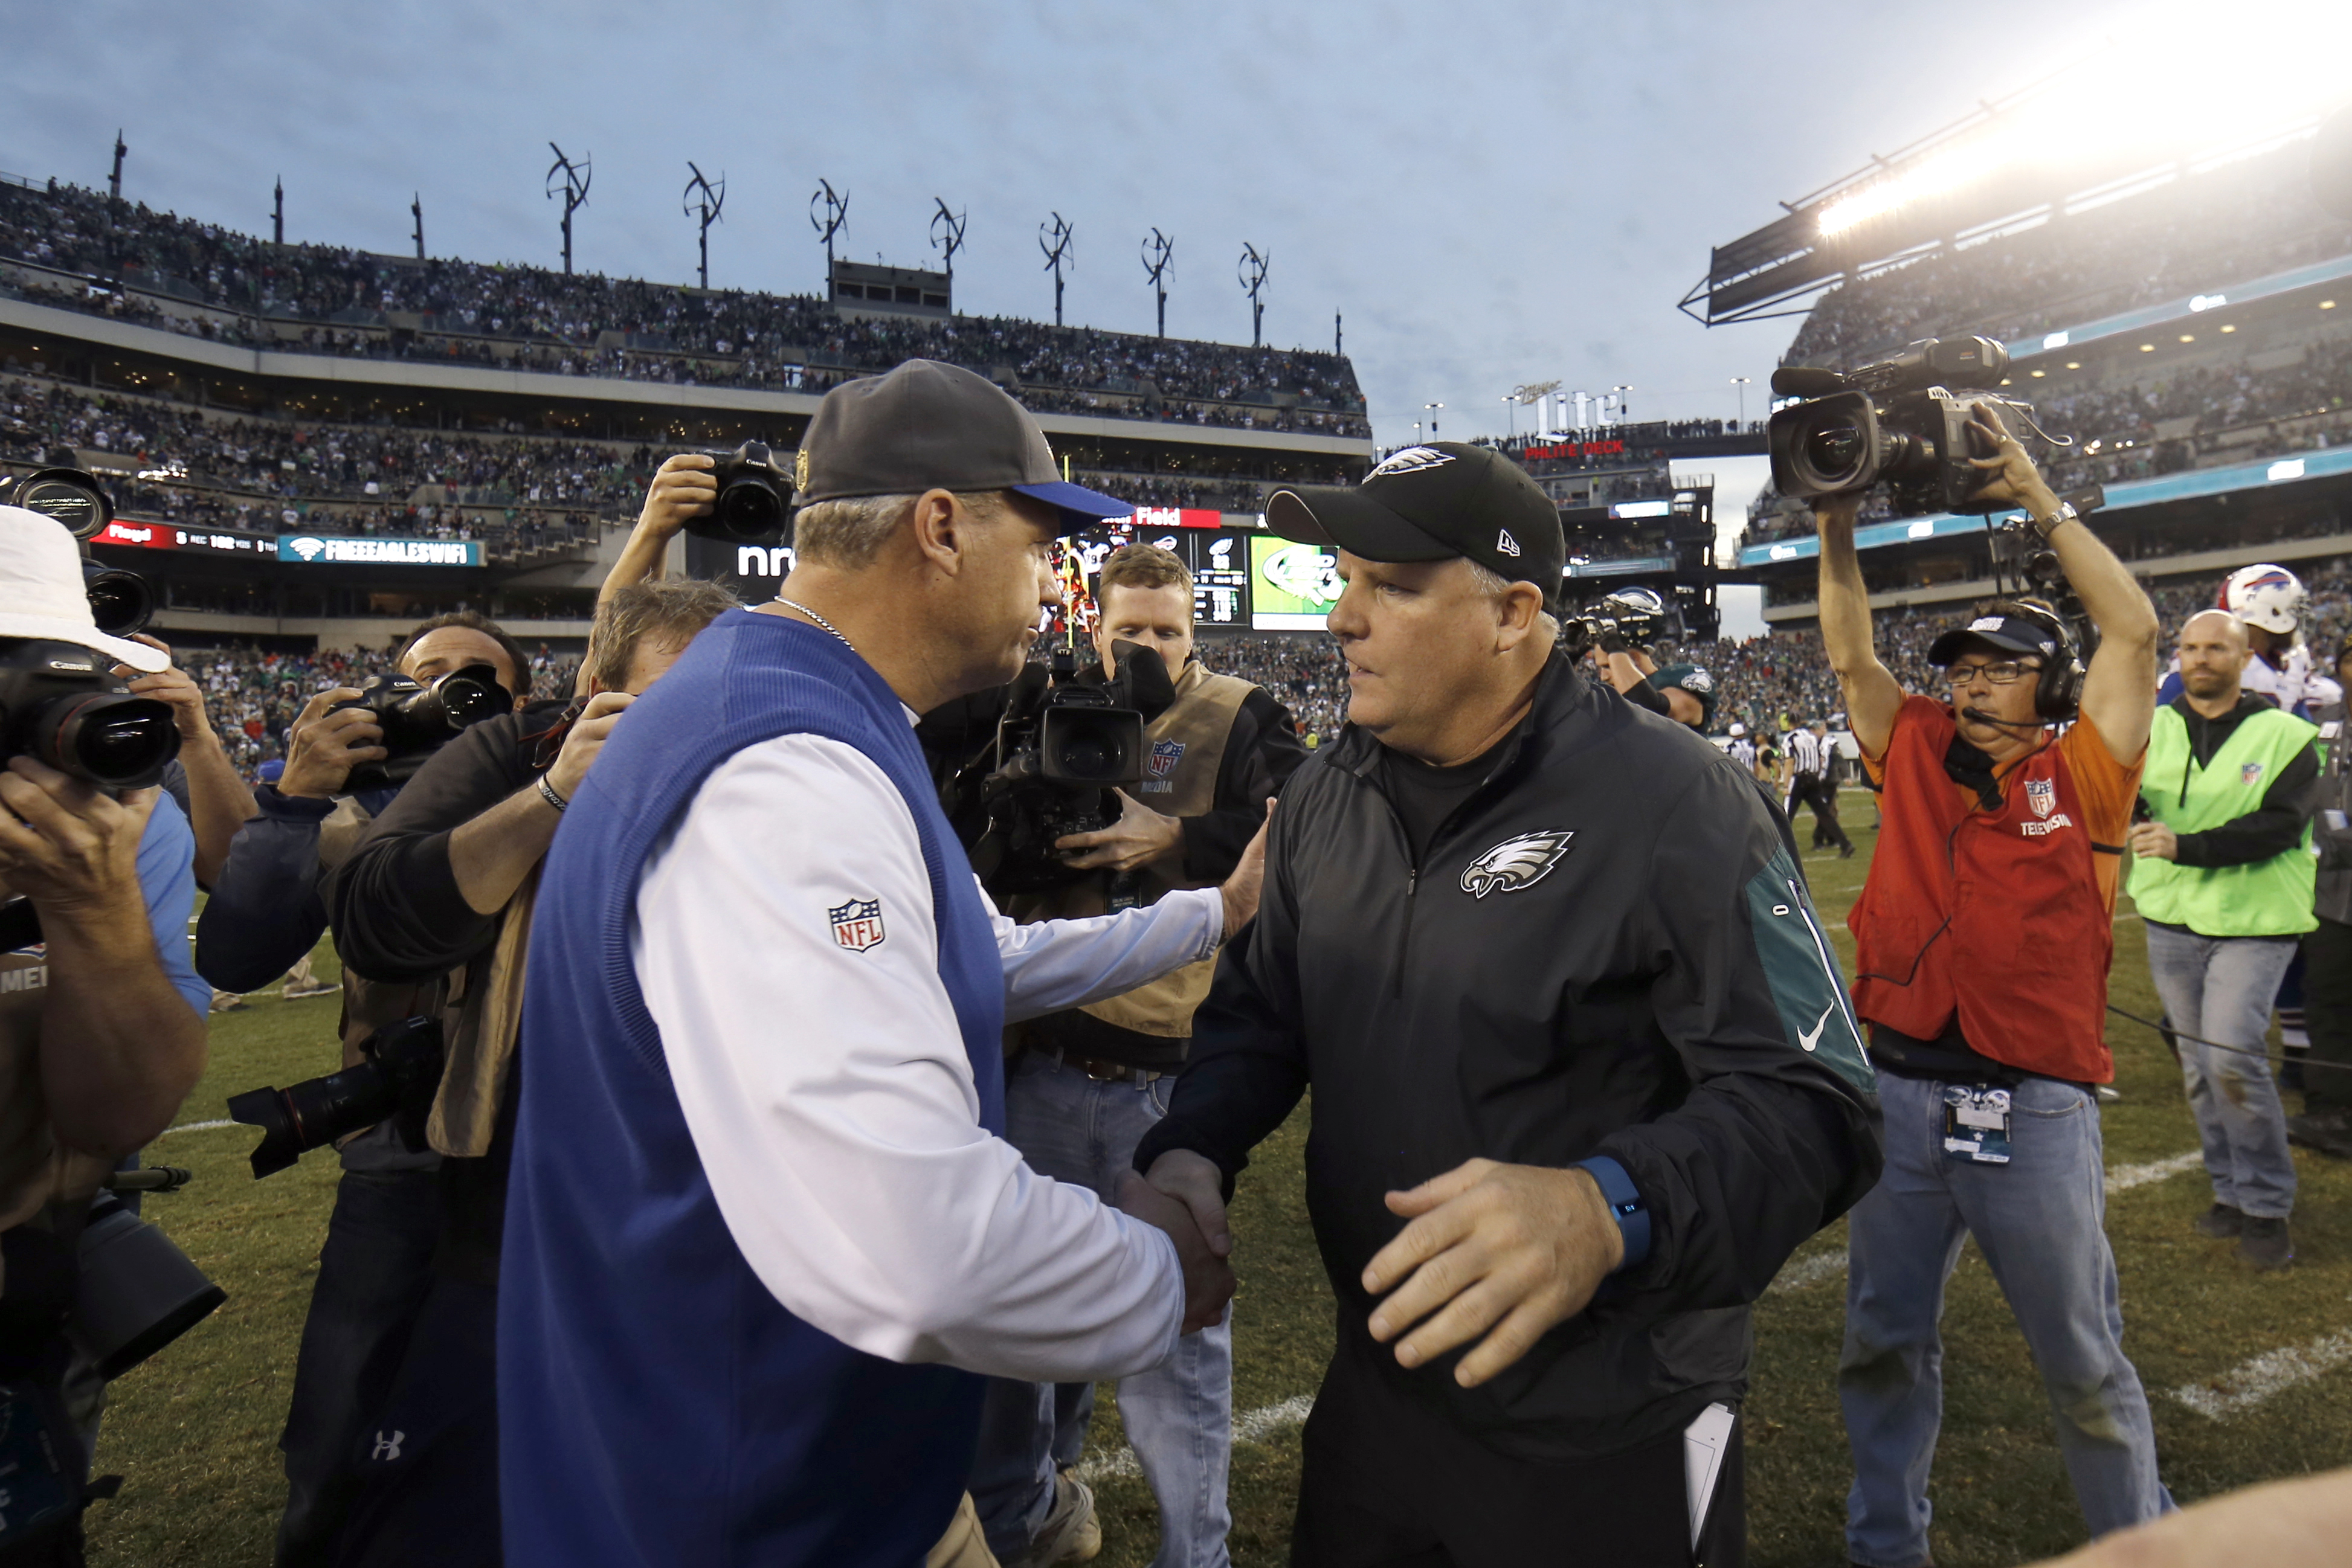 Philadelphia Eagles' Chip Kelly, right, and Buffalo Bills' Rex Ryan, left, meet after an NFL football game, Sunday, Dec. 13, 2015, in Philadelphia. Philadelphia won 23-20. (AP Photo/Michael Perez)